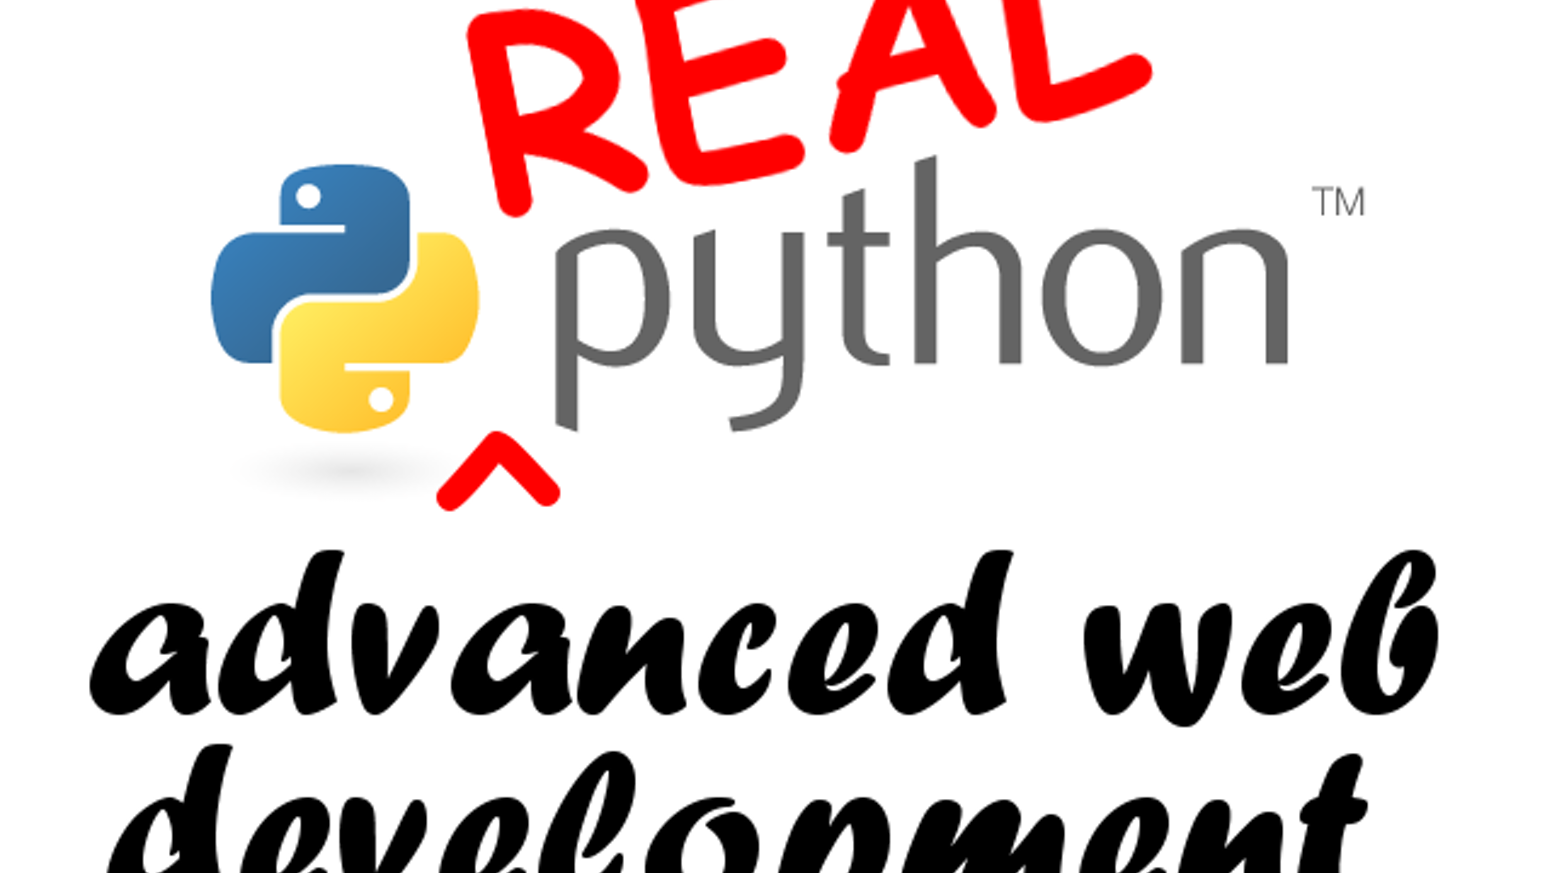 Learn advanced web development through hands-on, interesting examples with the power of Python and Django 1.6.